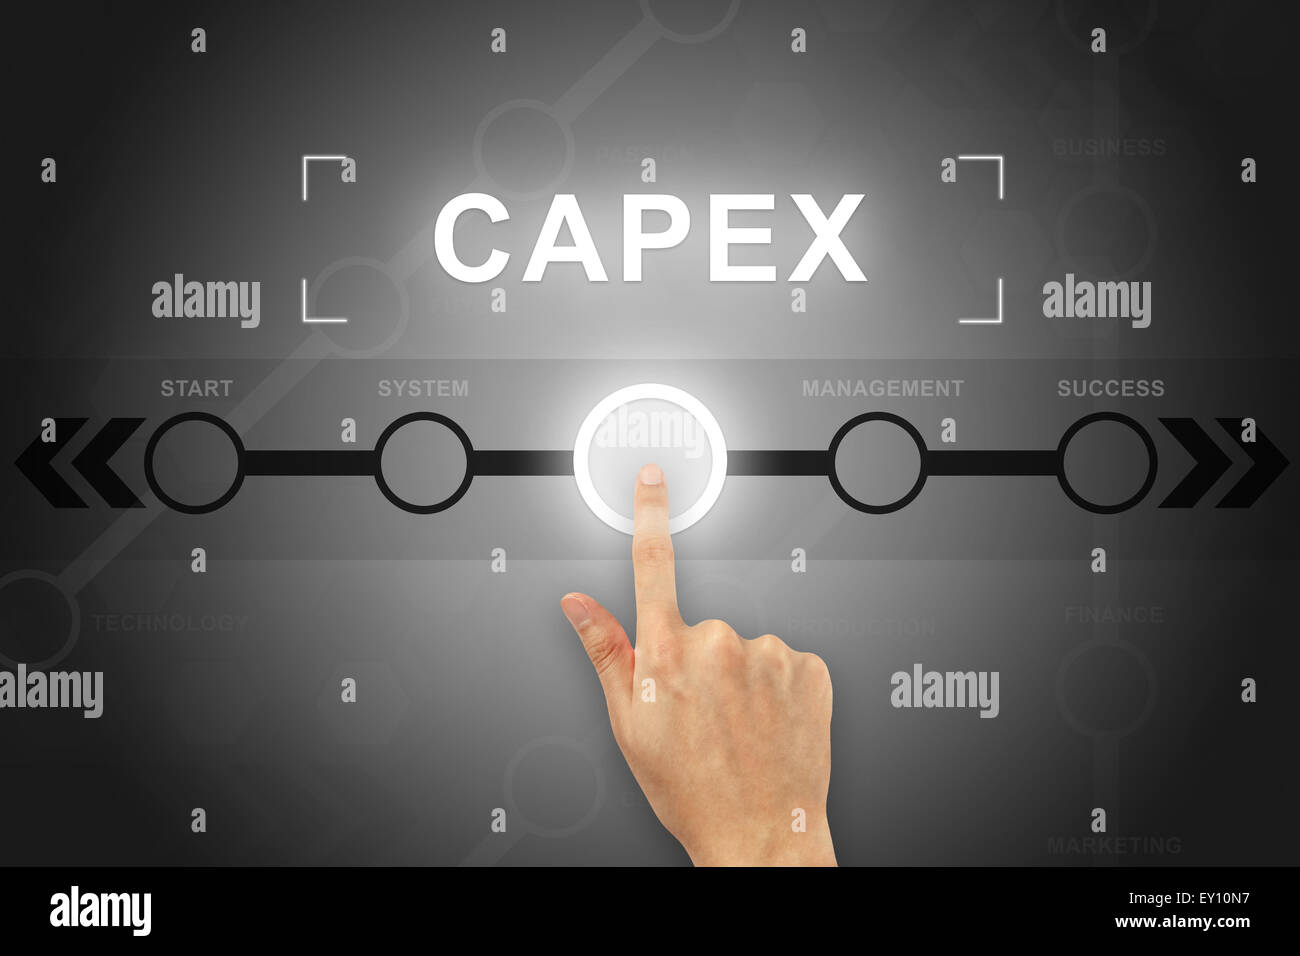 hand clicking capex or Capital expenditure button on a touch screen Stock Photo